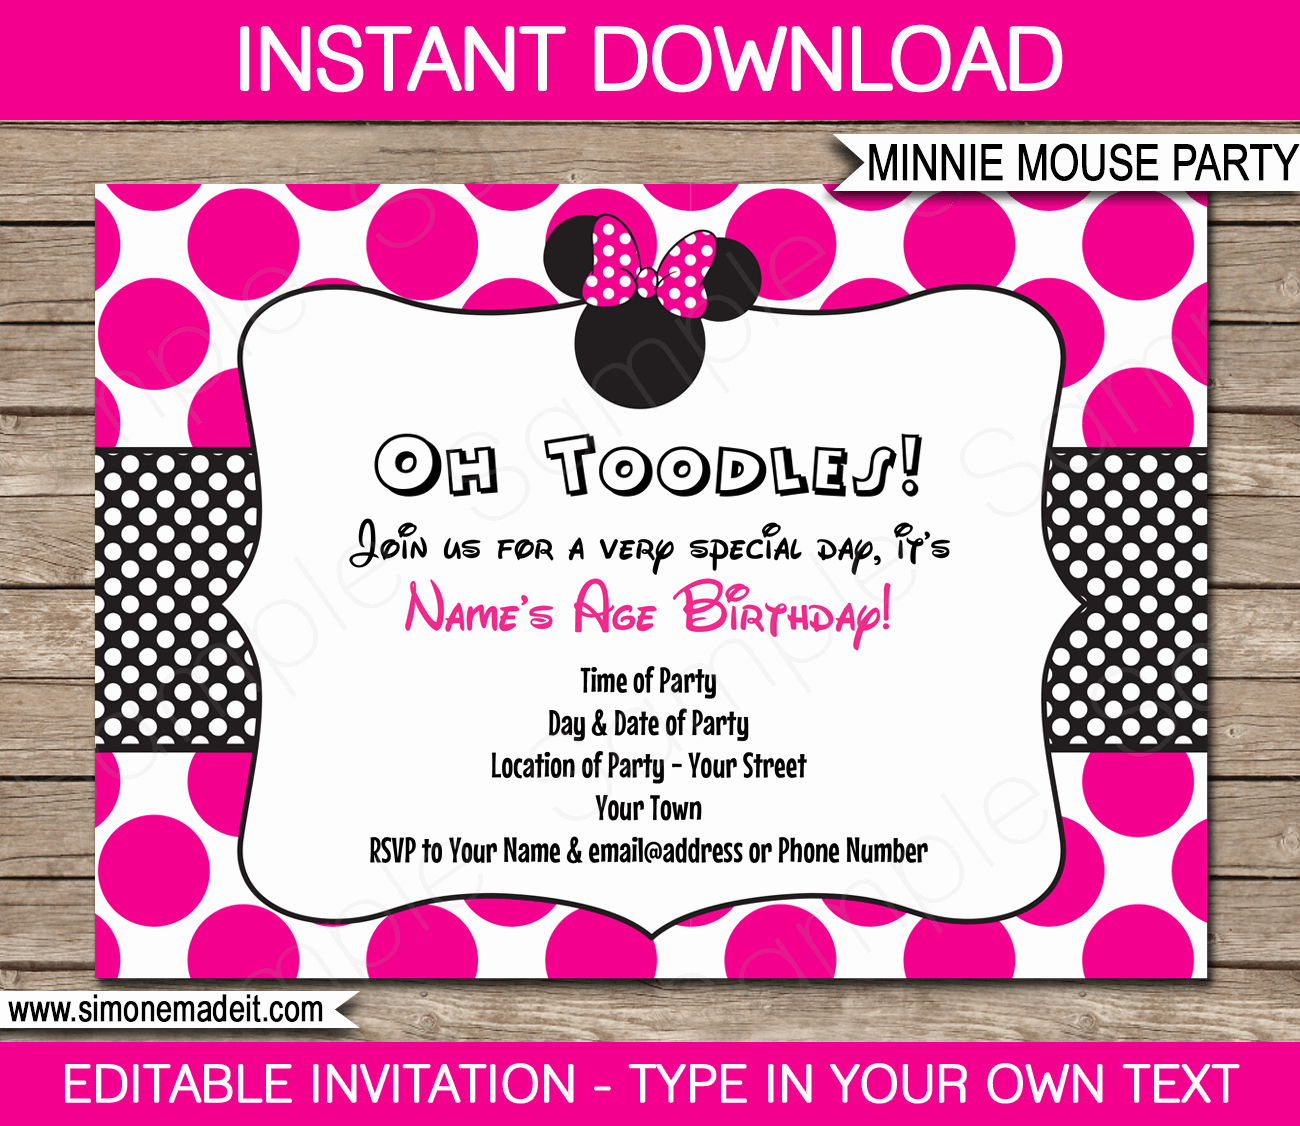 Minnie Mouse Blank Invitation New Minnie Mouse Party Invitations Template